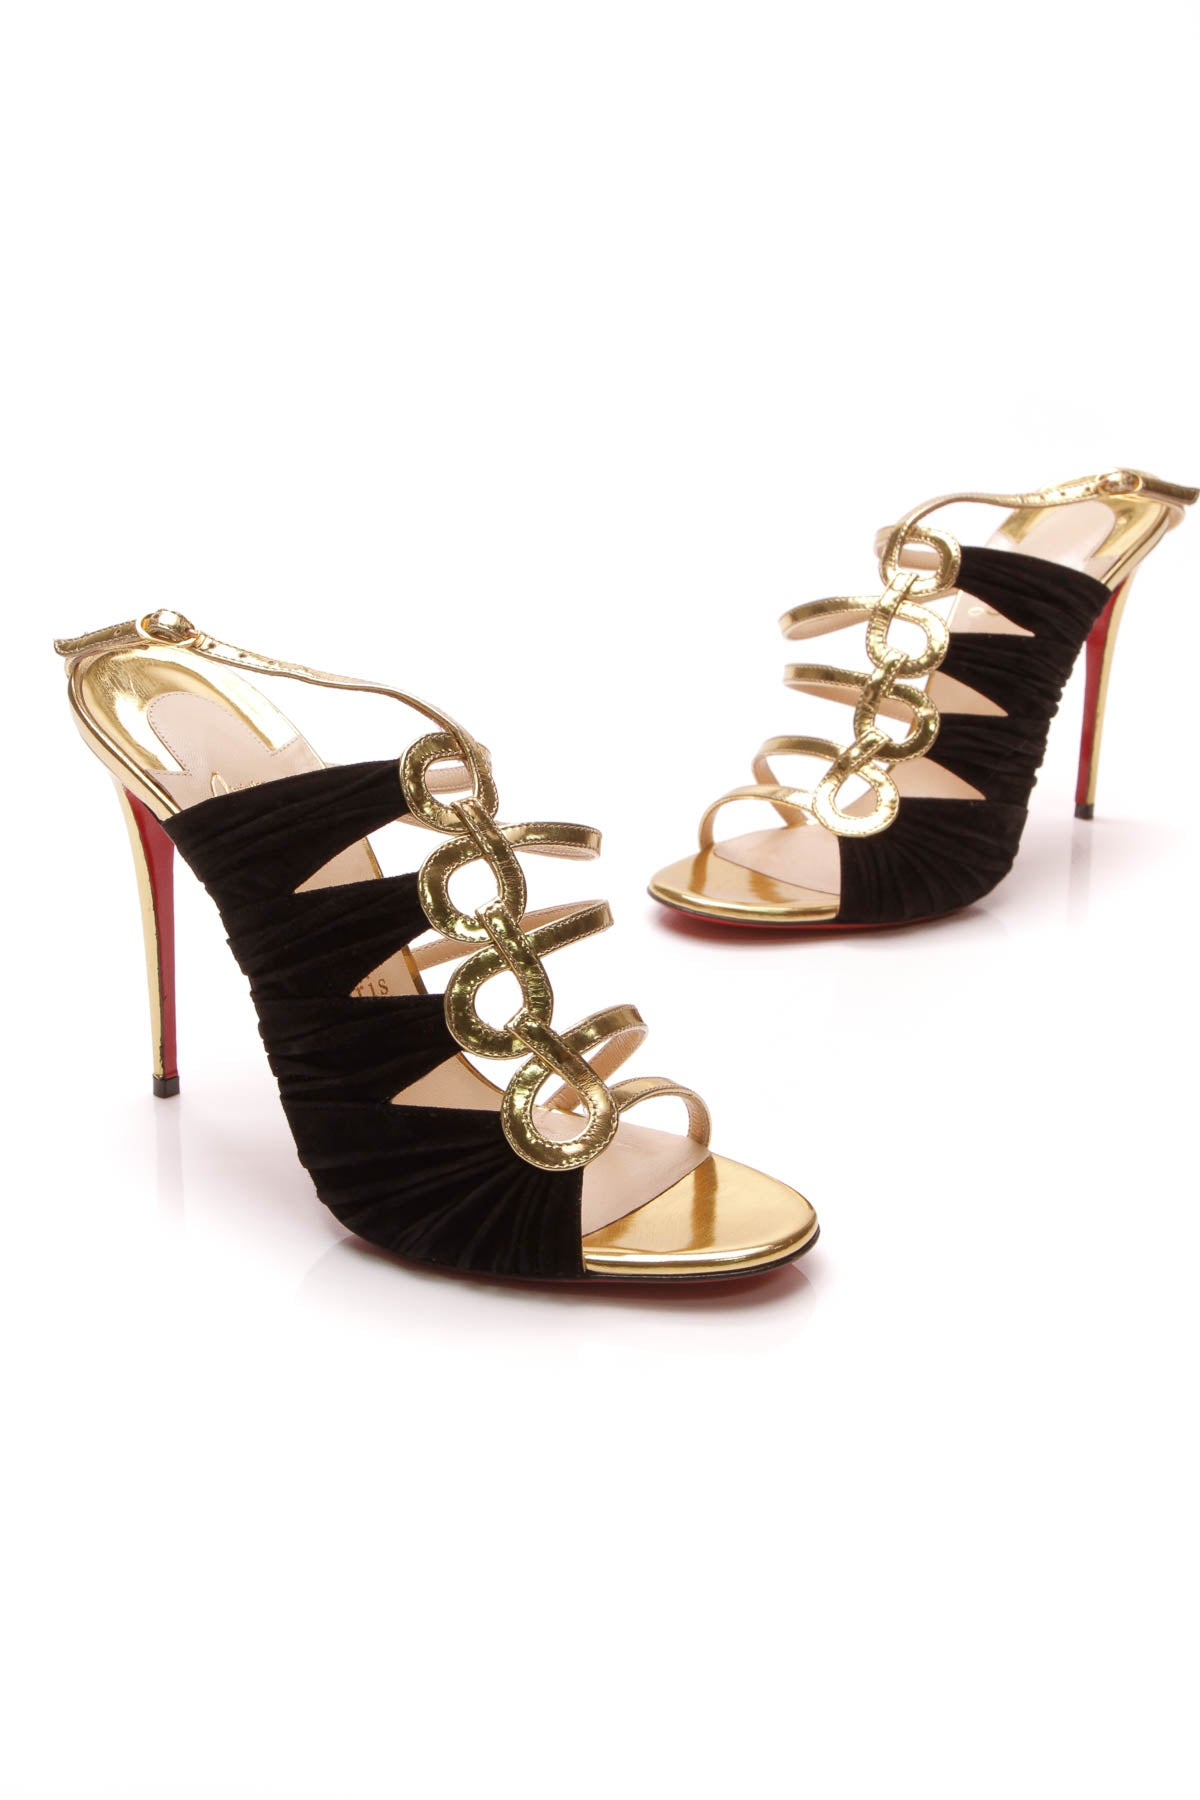 newest e082a db0a1 Christian Louboutin Tina Ruched Cage Heeled Strappy Sandals ...